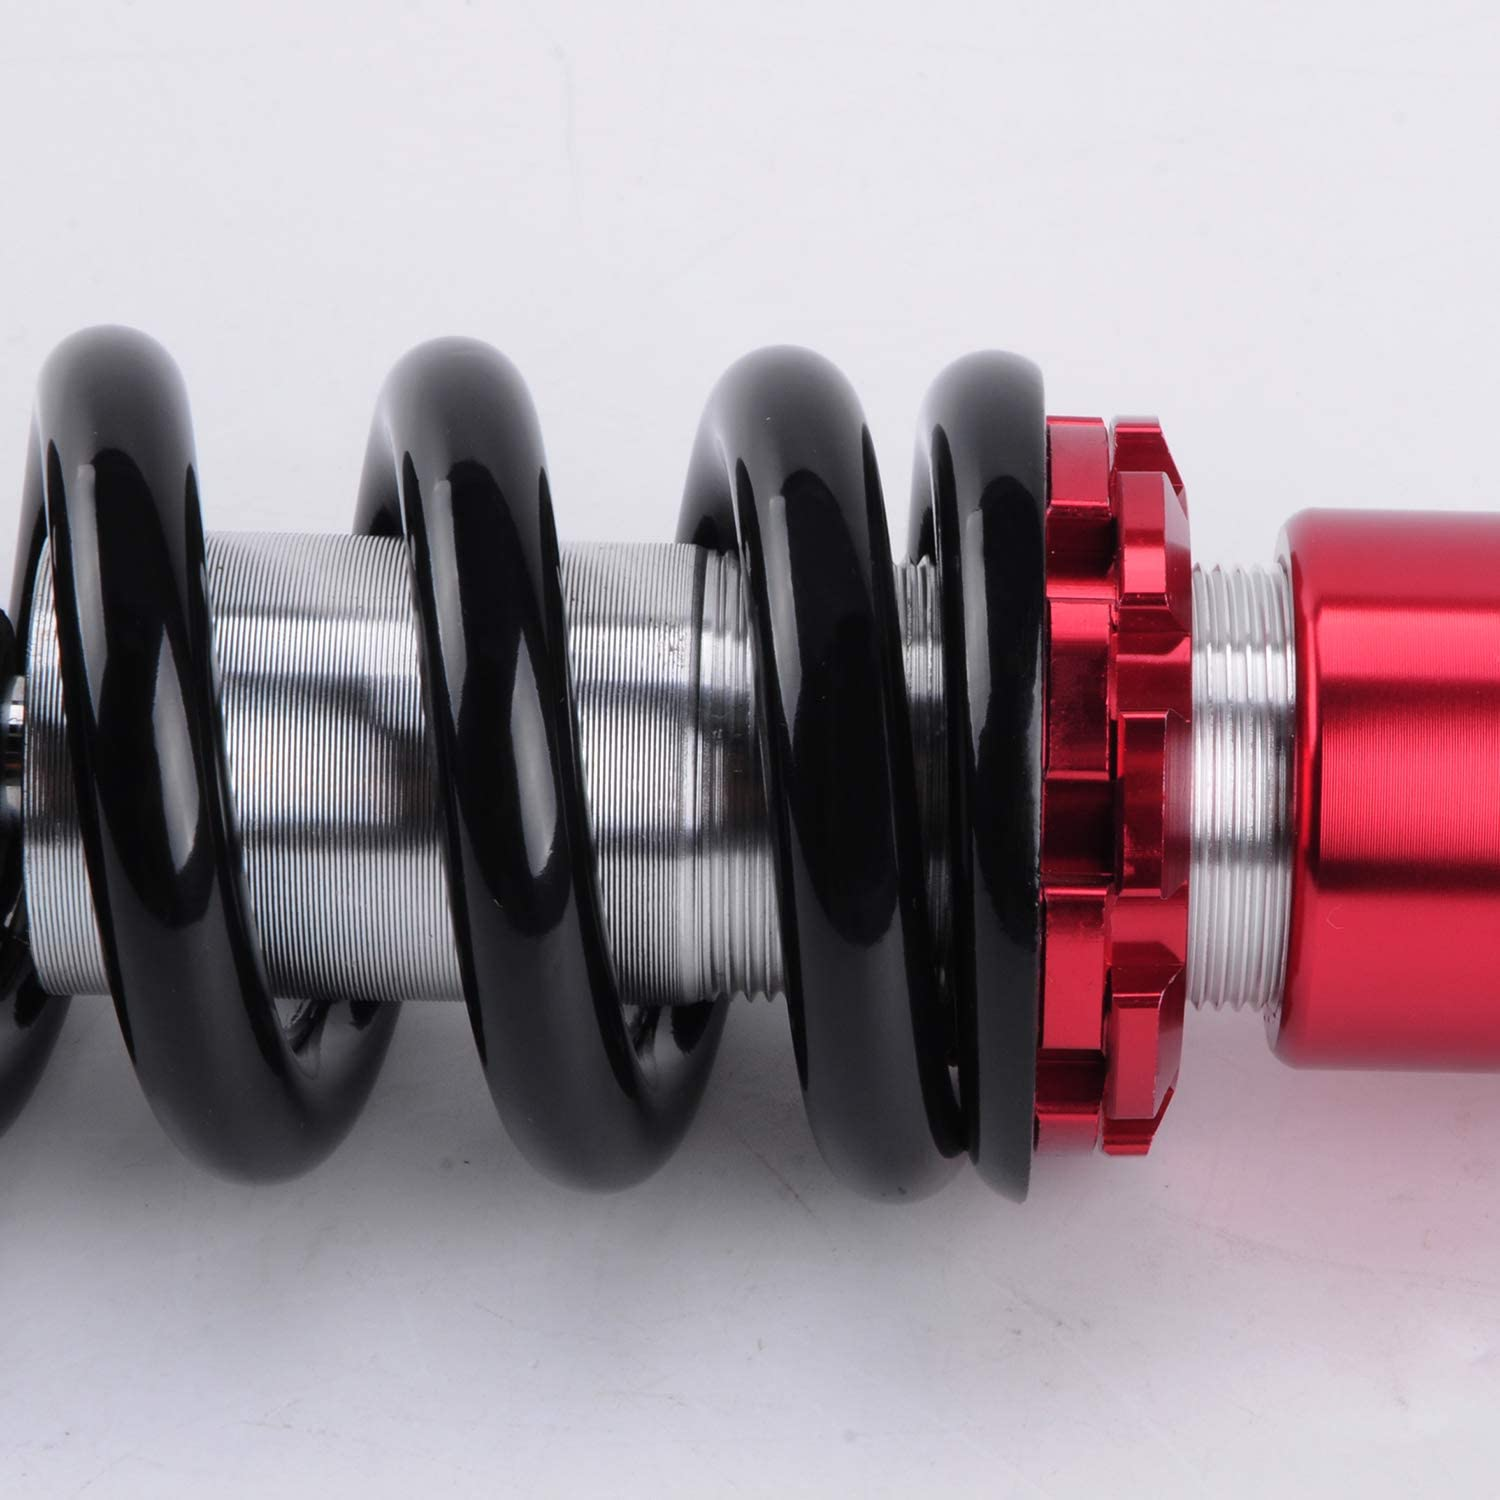 Sunny Motorcycles New One Piece 260mm 10 Motorcycle ATV Scooter Shock Absorber Rear Suspension Black Red